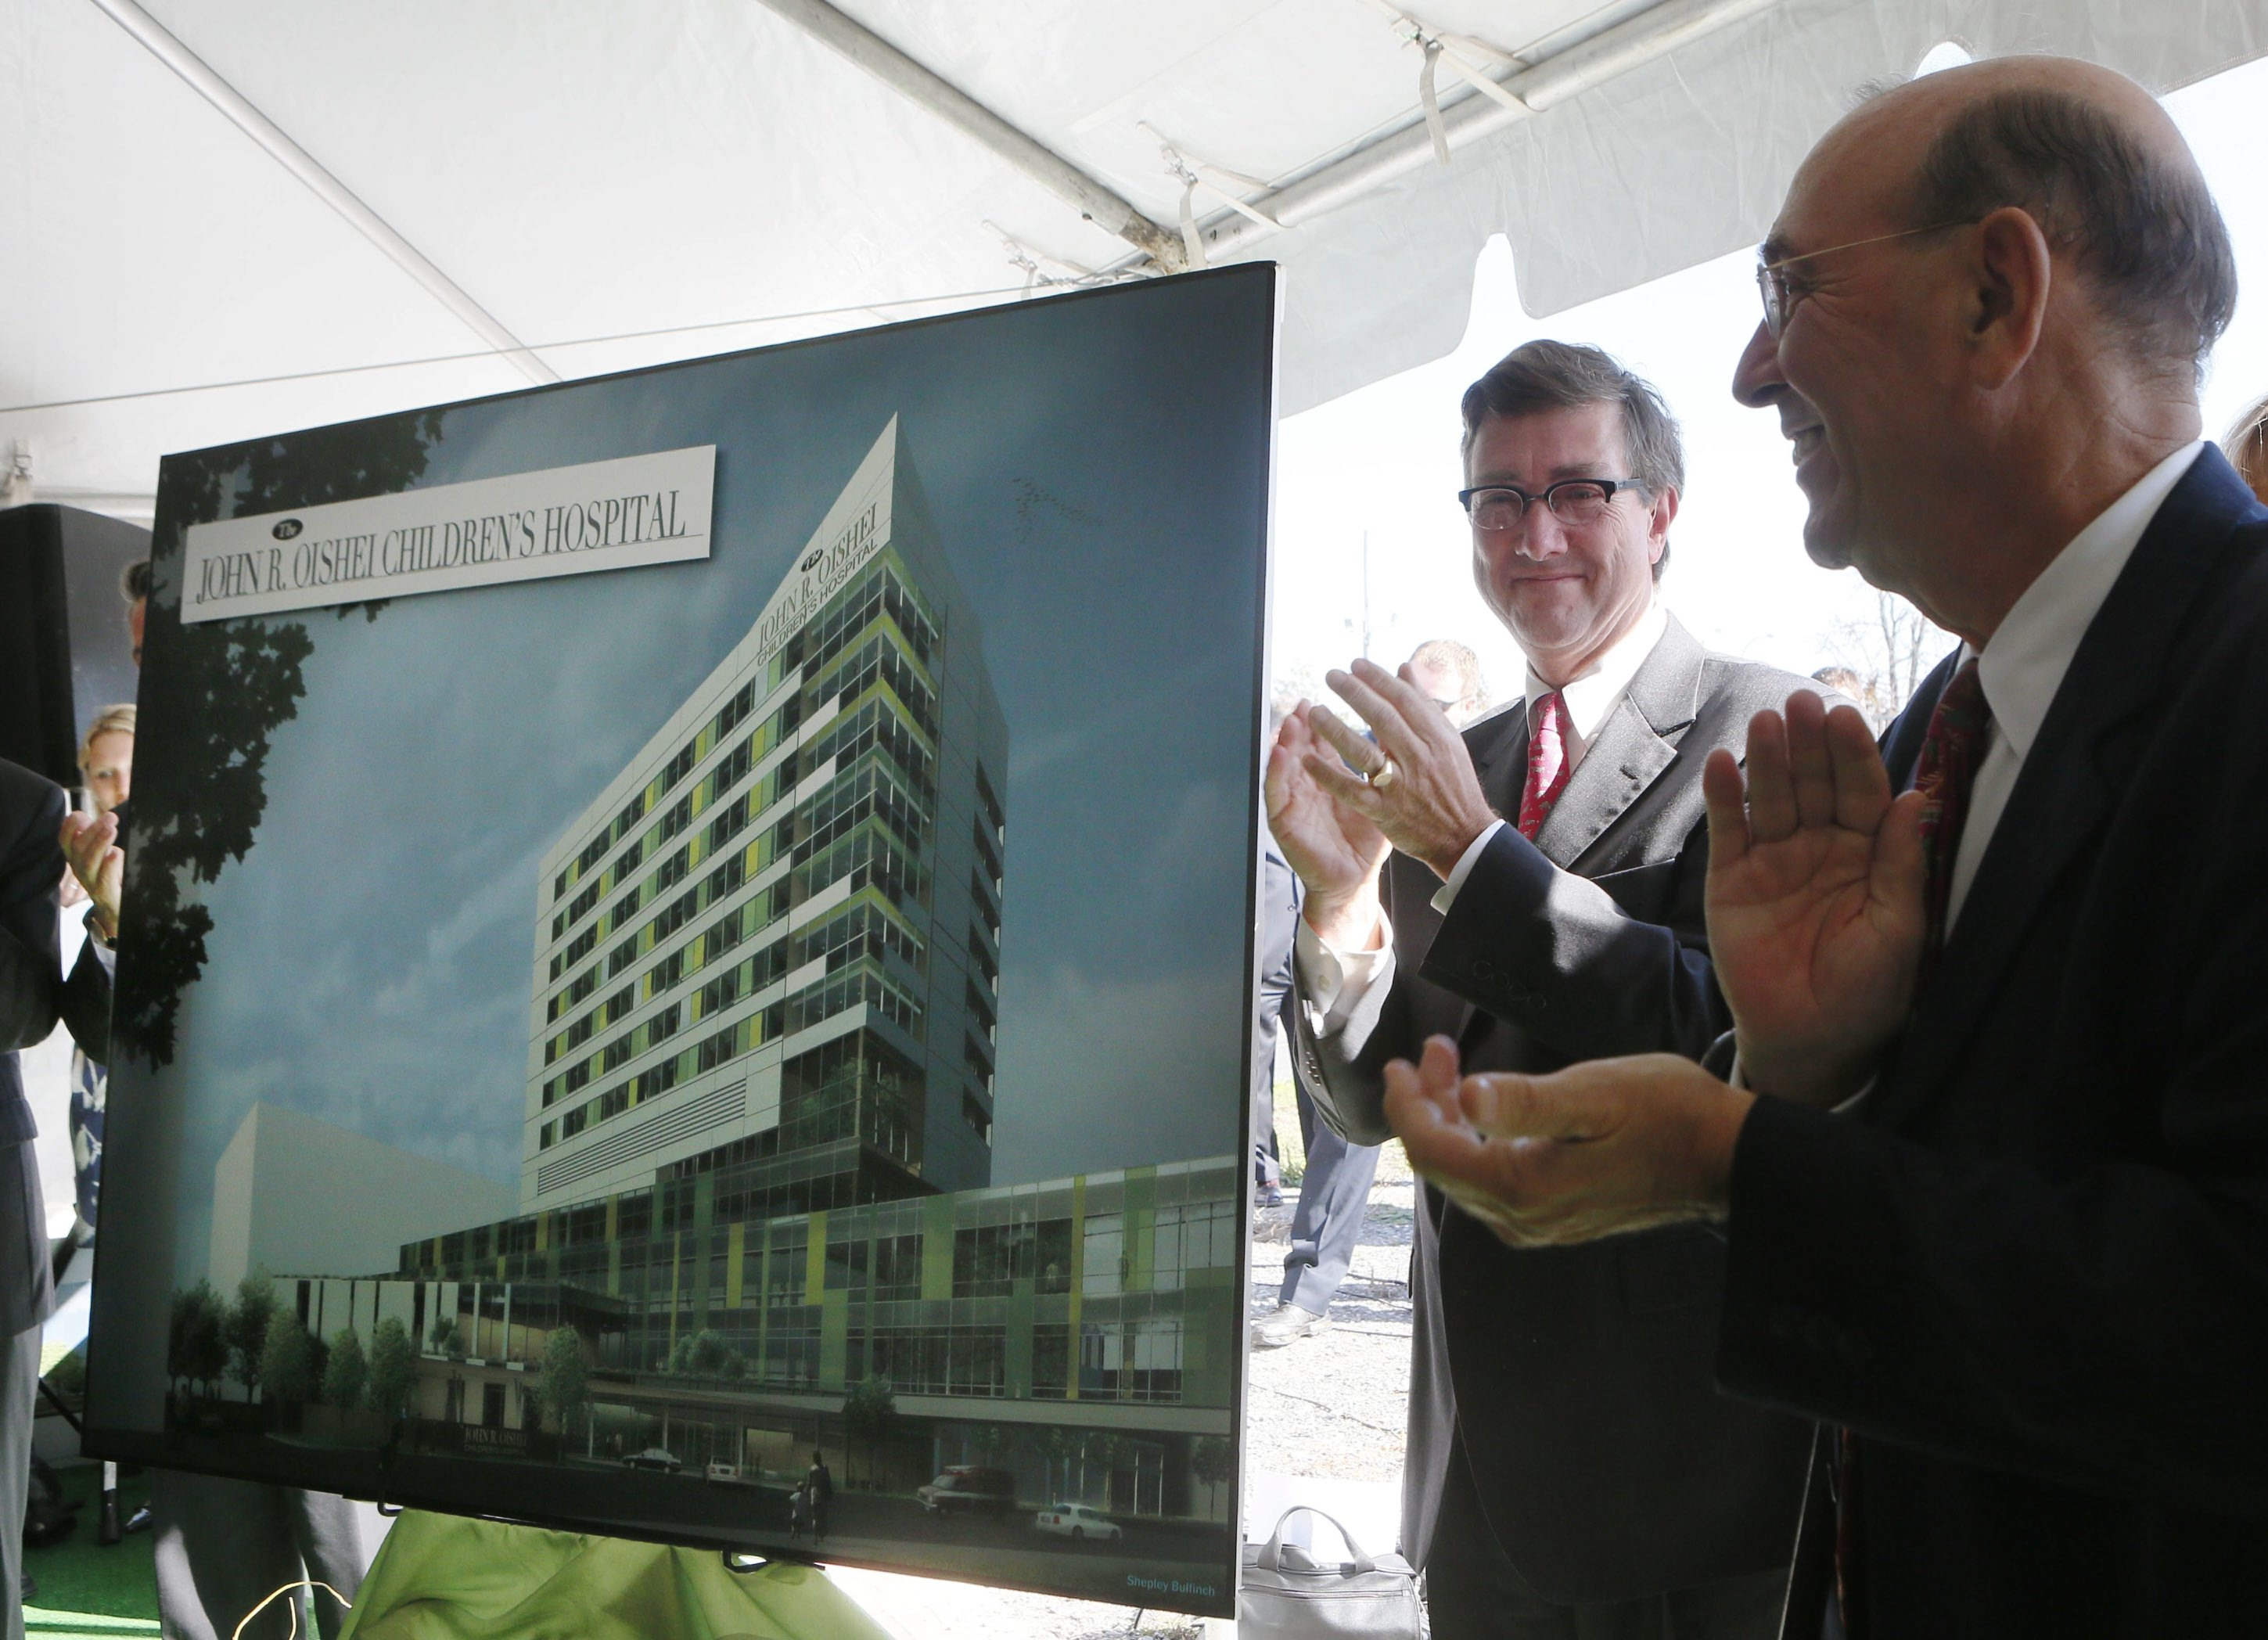 Kaleida Health CEO James R. Kaskie, left, and John R. Oishei Foundation Chairman James M. Wadsworth stand next to an artist's rendering of the new John R. Oishei Children's Hospital during a ceremony at the planned site. (Derek Gee / Buffalo News)